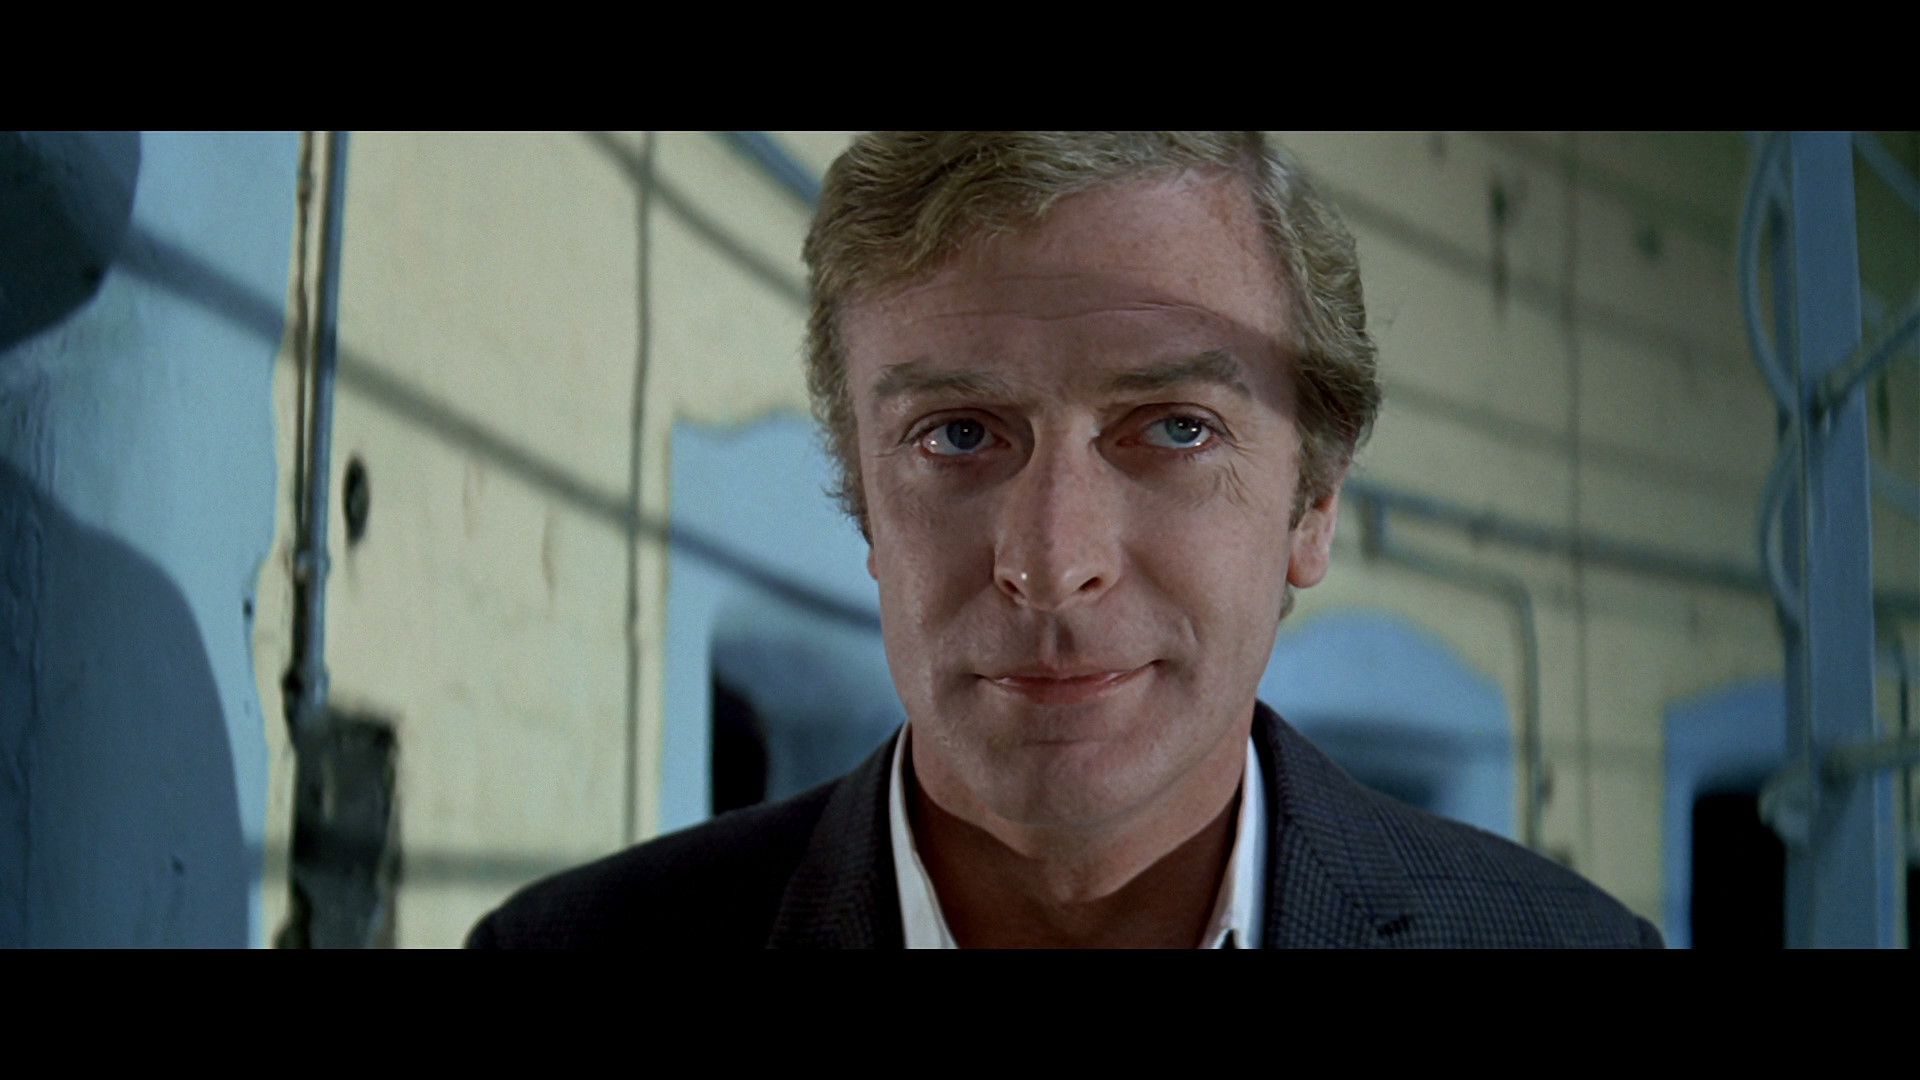 Michael caine Celebrity HD Wallpaper